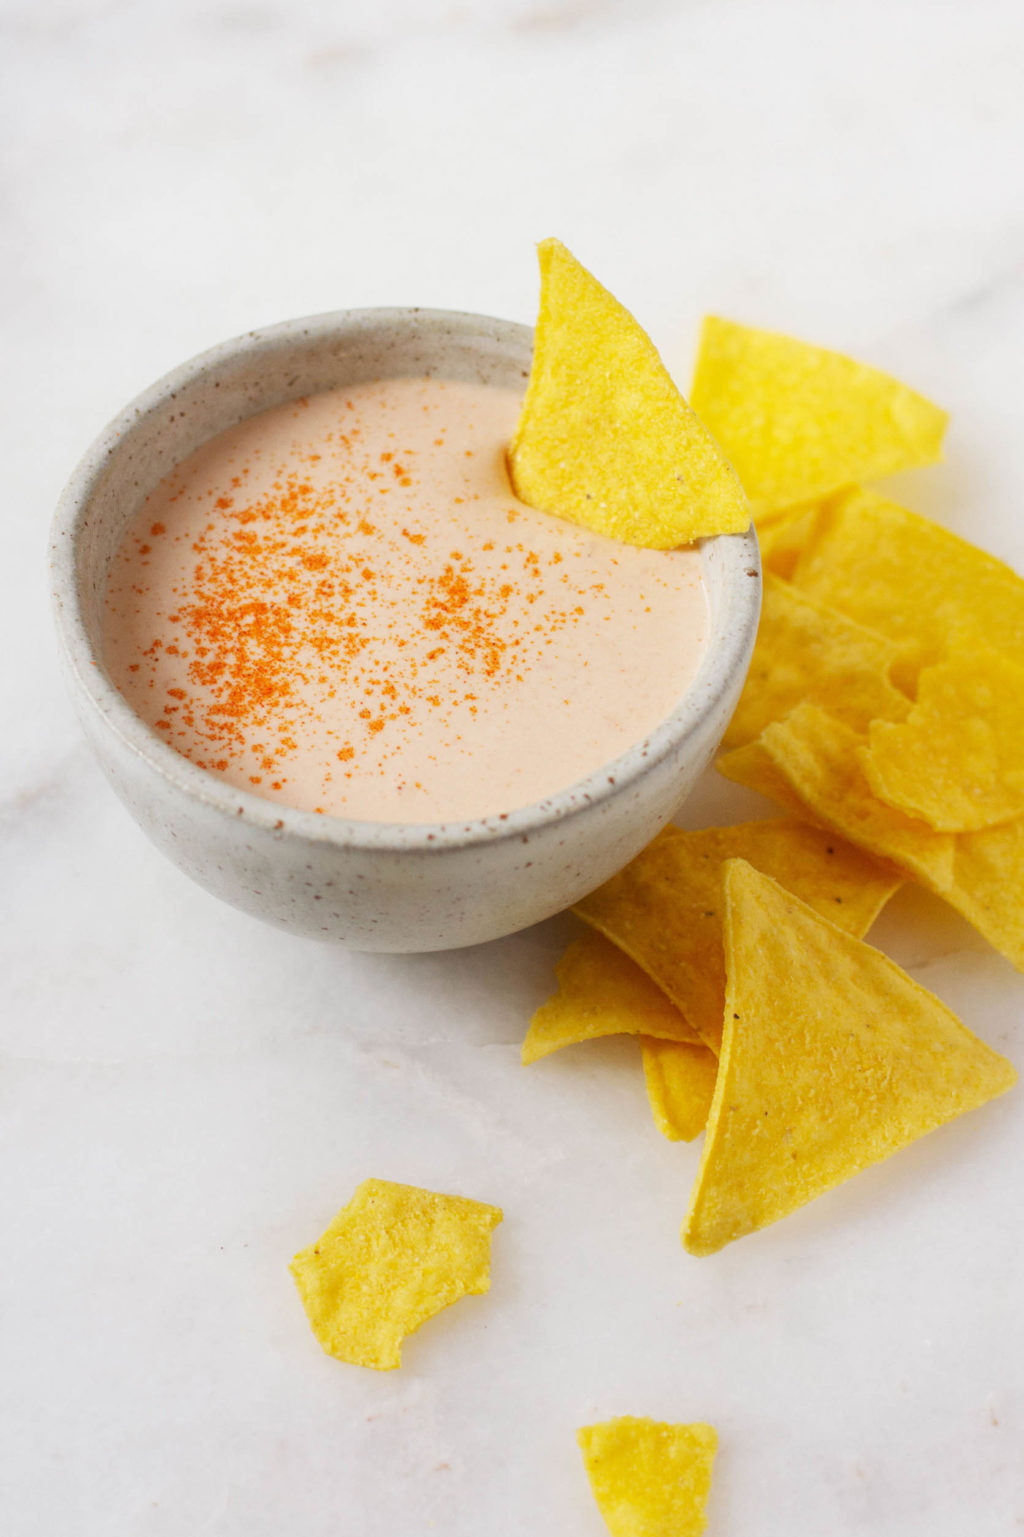 A small, circular bowl of a creamy vegan nacho sauce is accompanied by corn chips. One of the corn chips has been dipped into the sauce.